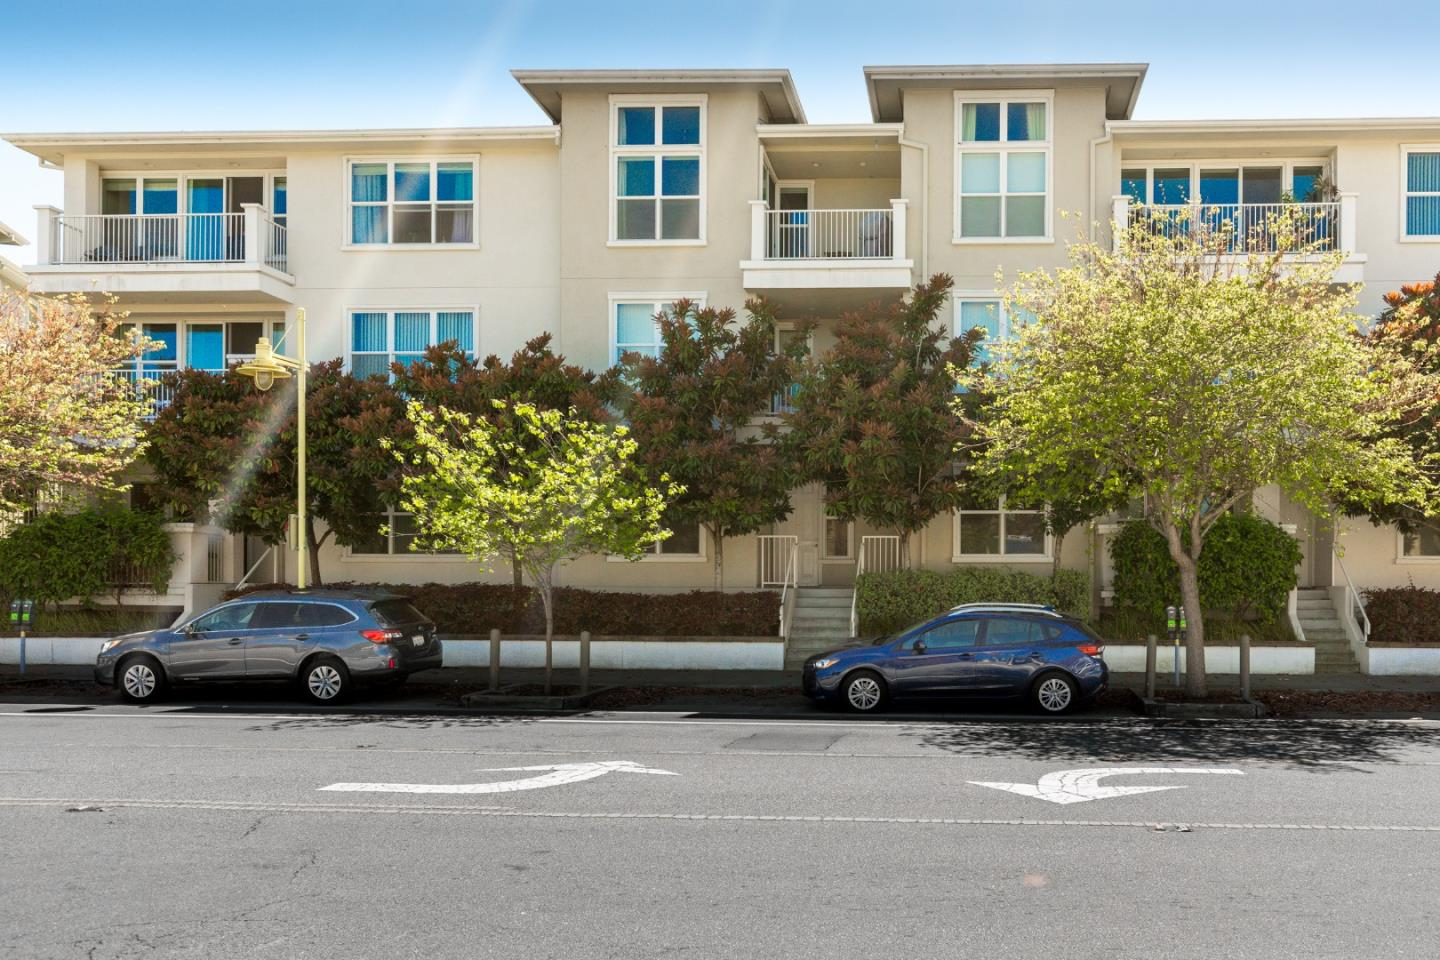 Downtown living at its best.  Active living at its best.  Great commute location too. Leave your car in the garage and enjoy a stroll to your favorite restaurants or movie theaters.  Google and Apple bus stops are near by.  This coastal condo community has it all with a pool, spa, elevator, secured garage and bicycle parking.  Inside, the unit has sleek black counter tops balanced with light stained bamboo floors.  Bedrooms are carpeted and bathrooms have marble tile.  This unit comes with a storage area and 2 parking spaces.  This ground floor condo has the convenience of having 2 doors--one directly accessing River Street and the other to the community courtyard.  Come see and experience resort-like living in downtown Santa Cruz!